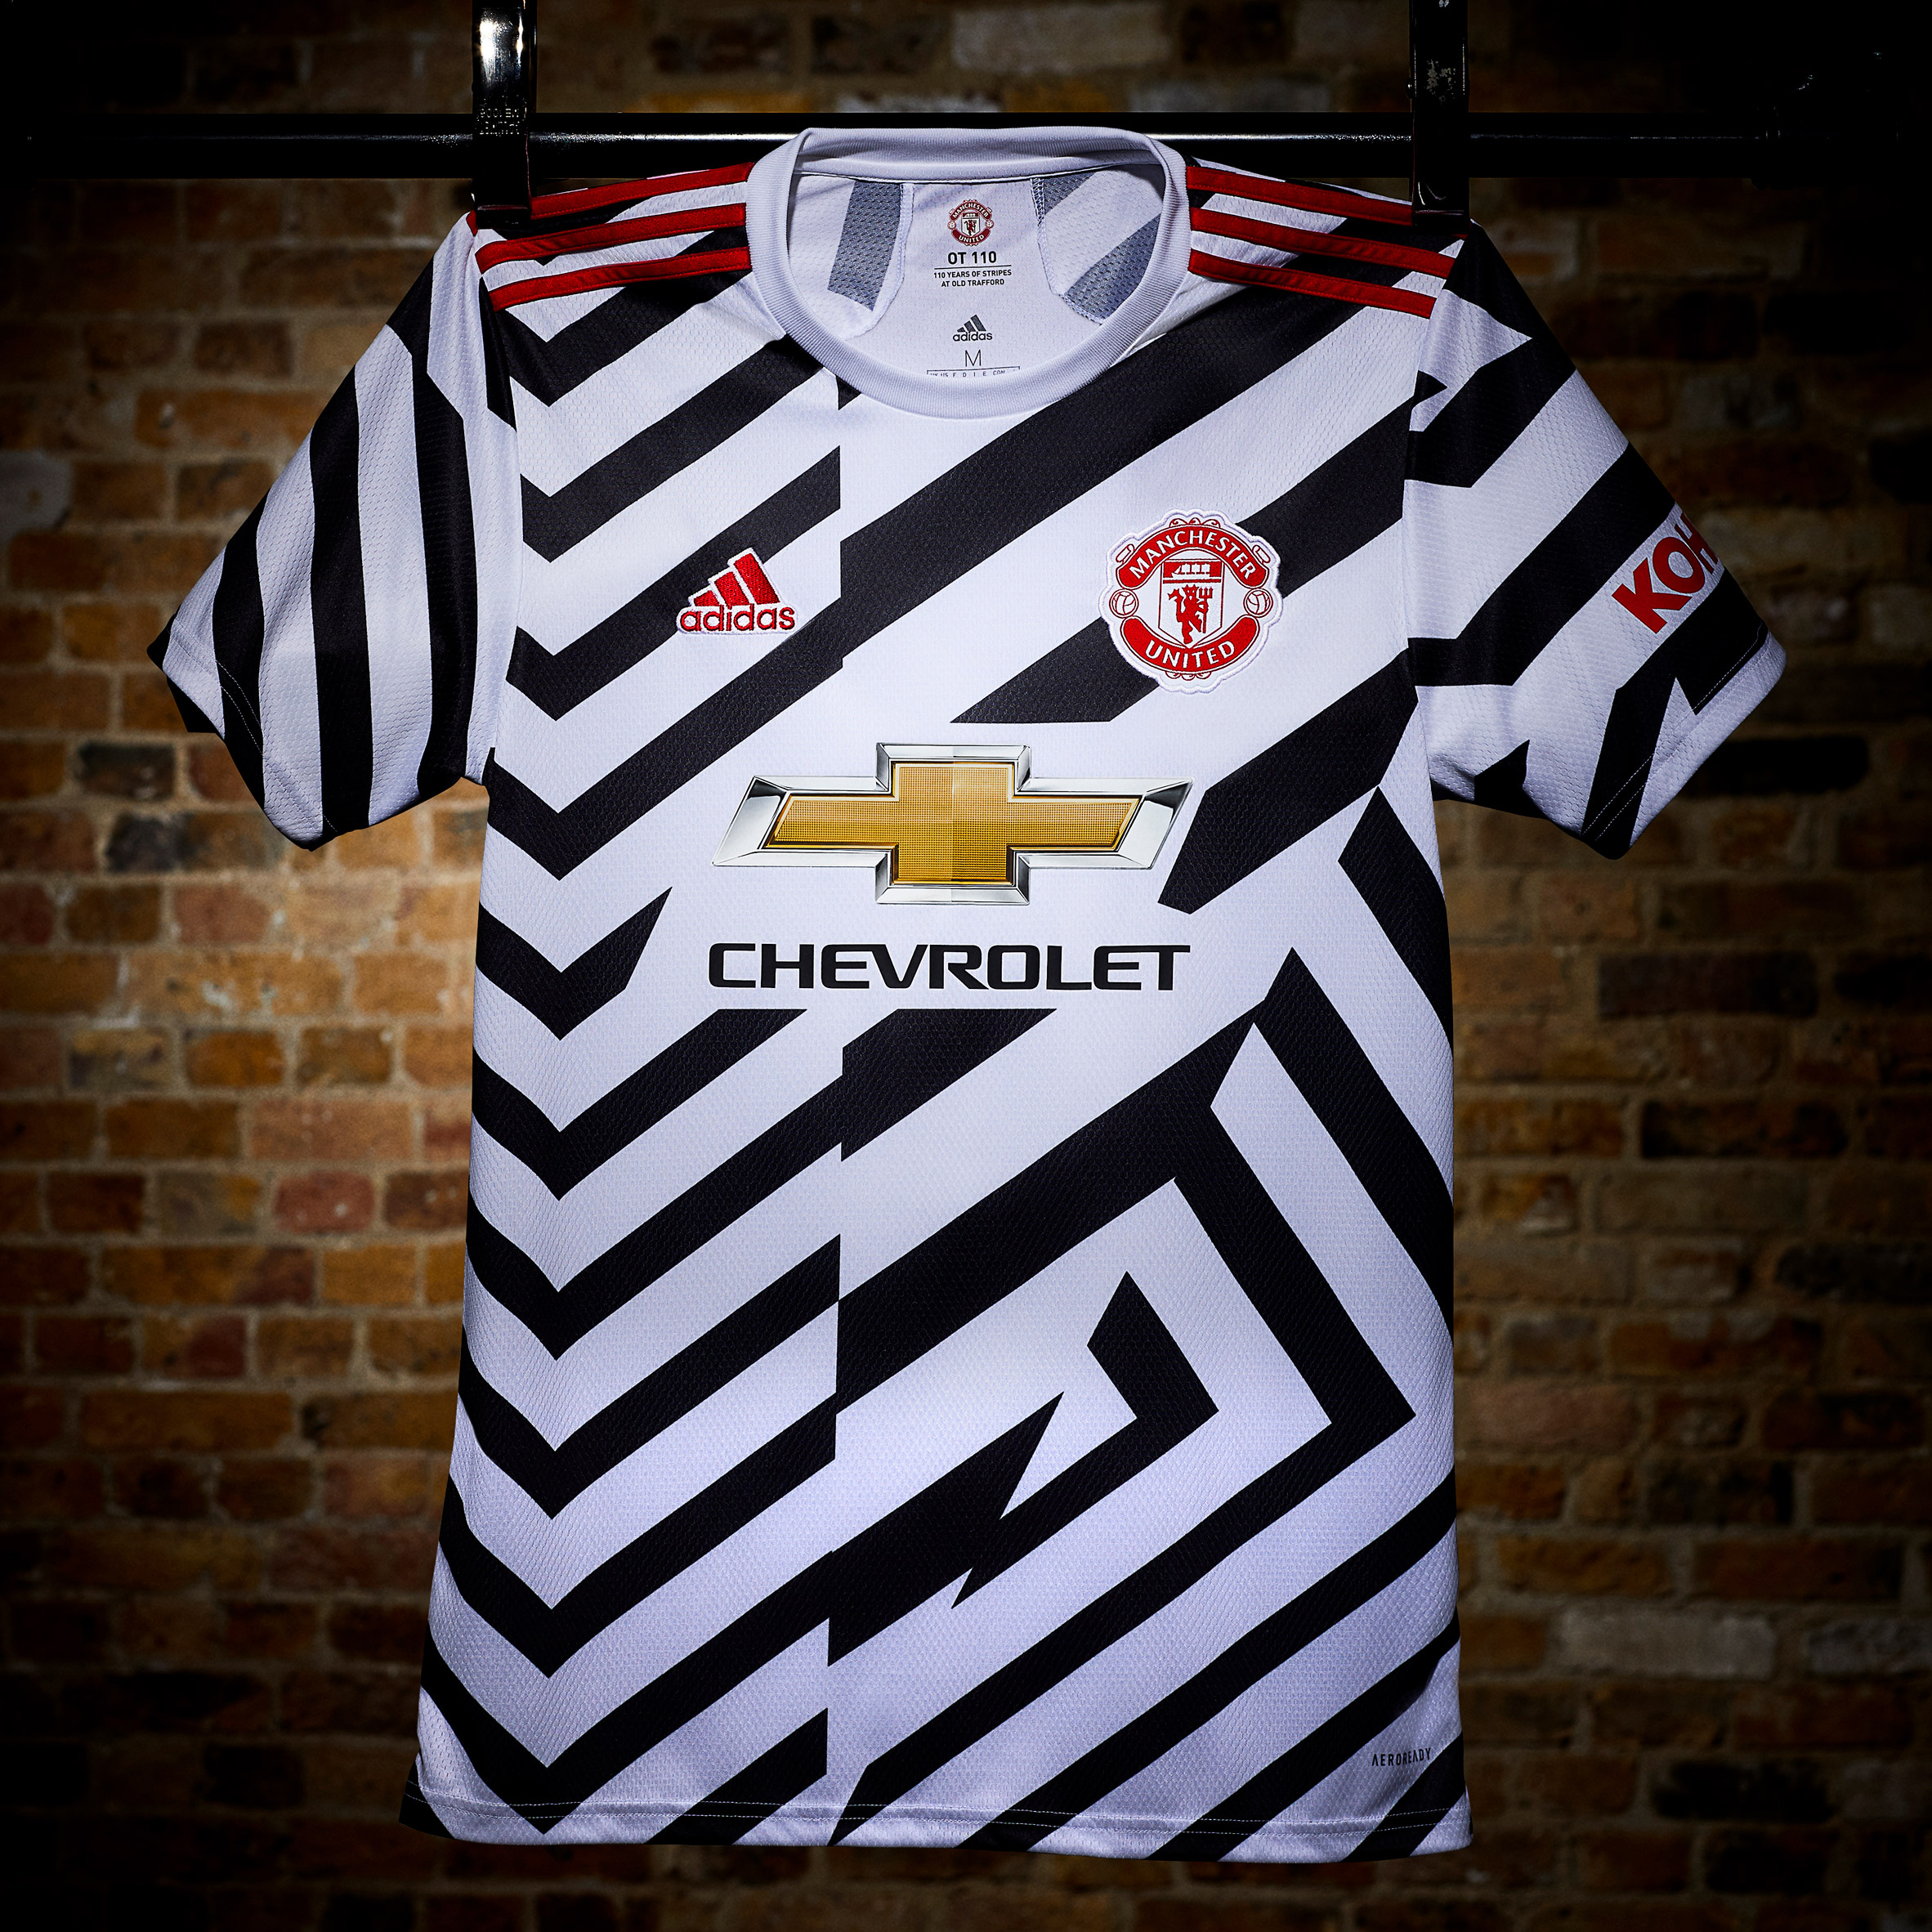 manchester united reveals dazzle camouflage kit for 2020 21 season dazzle camouflage kit